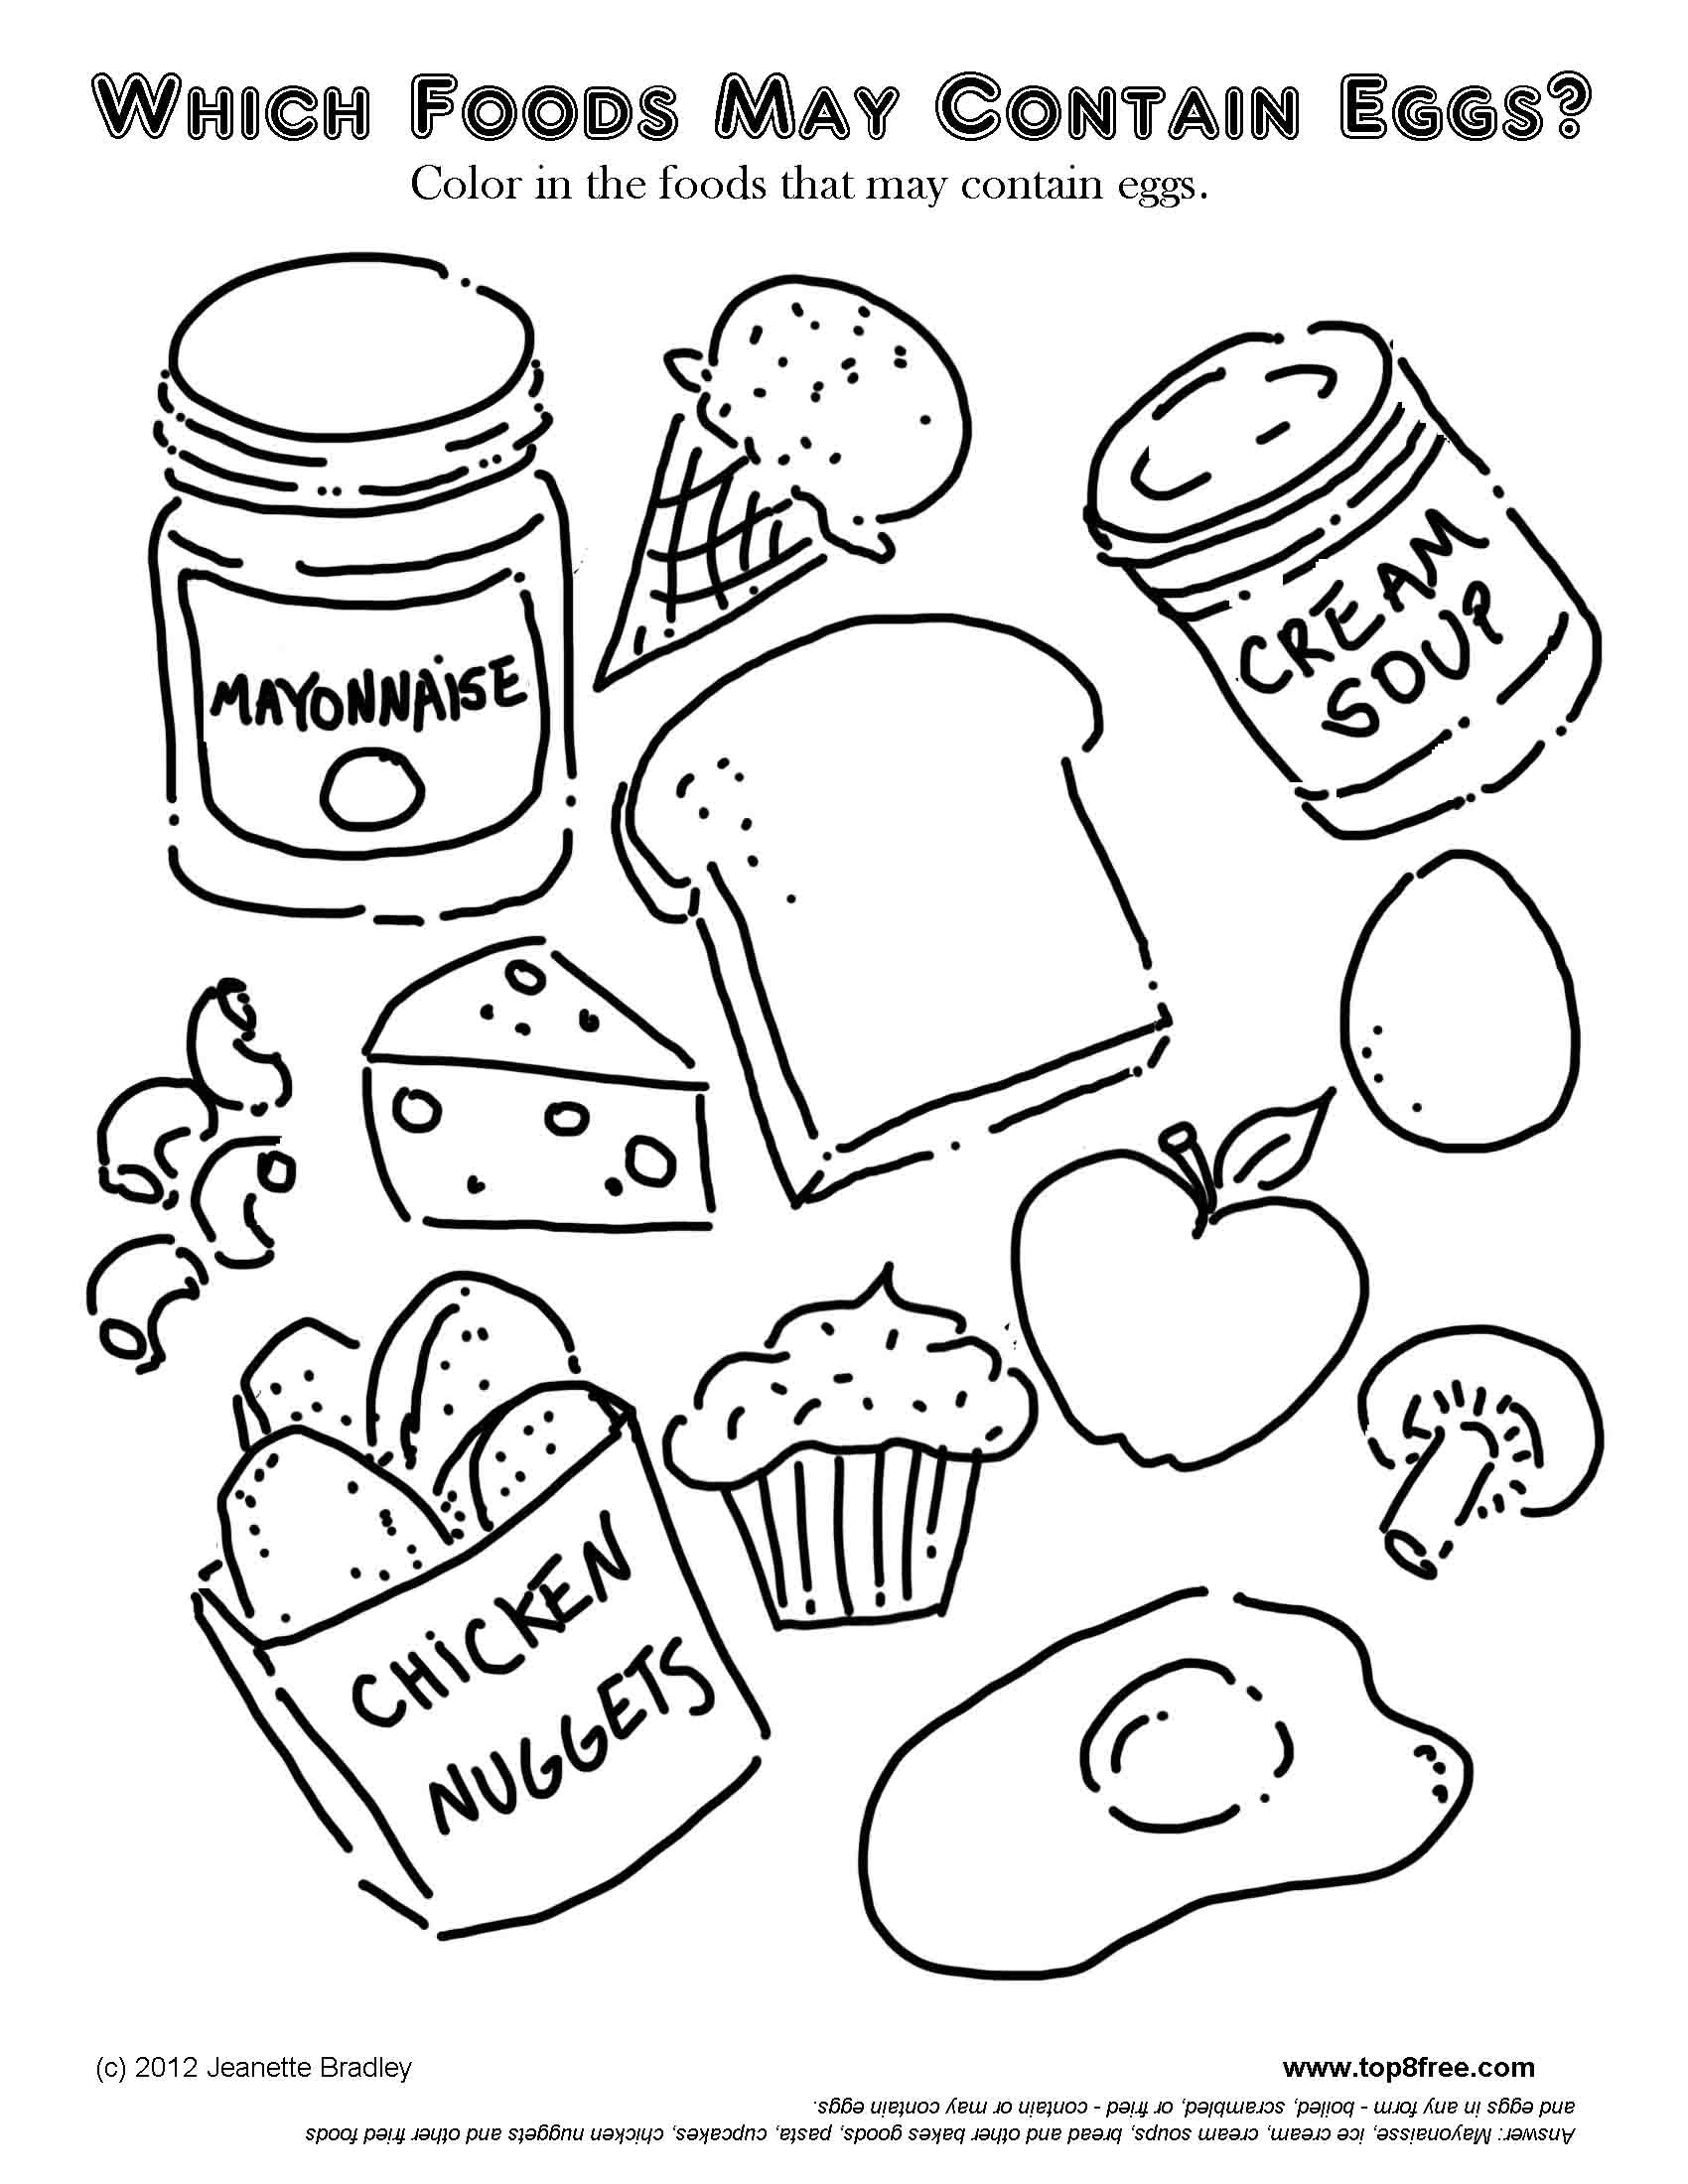 Go Foods Drawing at GetDrawings com | Free for personal use Go Foods